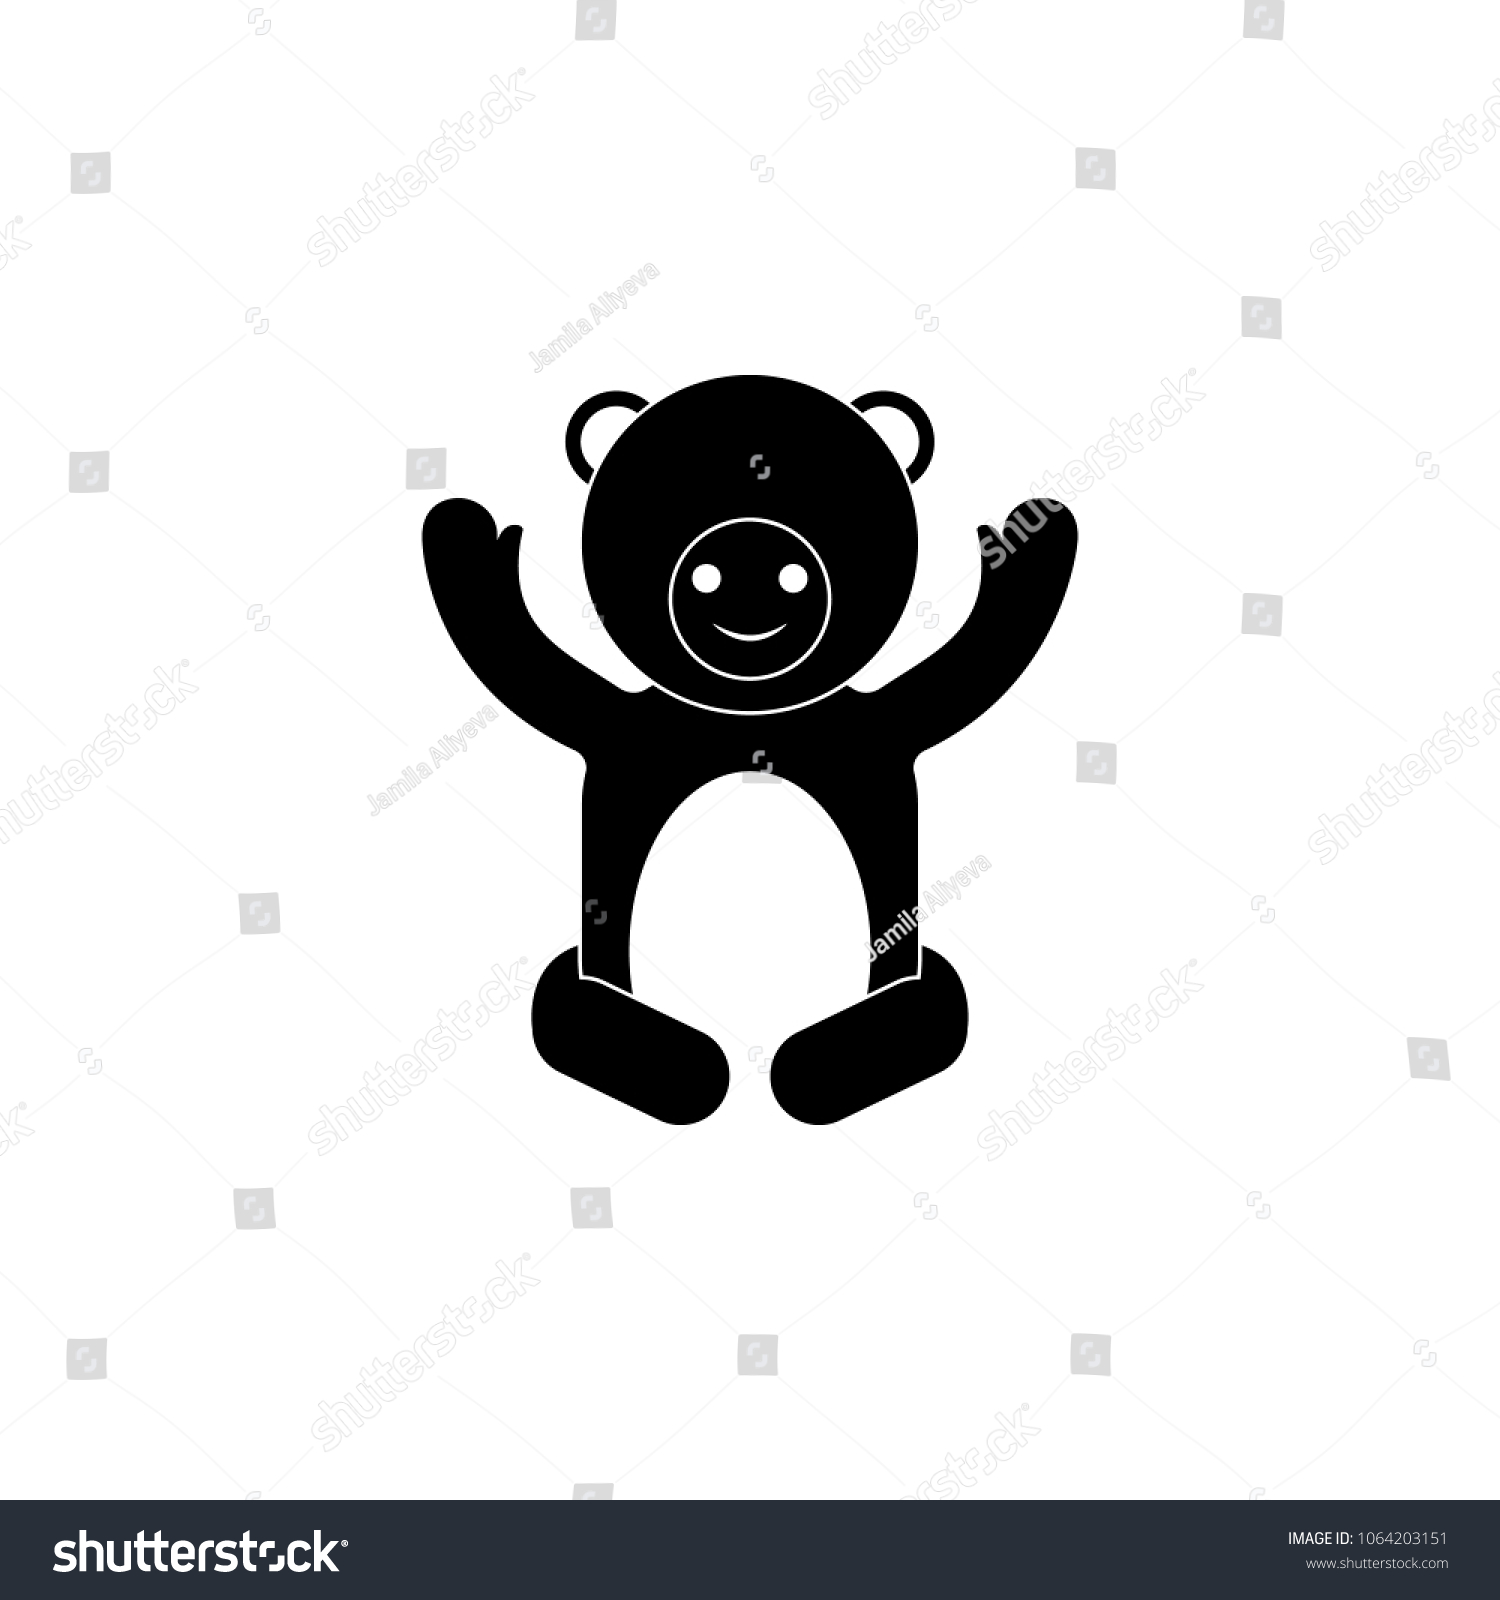 Baby Clothes Teddy Bear Icon Element Stock Vector HD Royalty Free